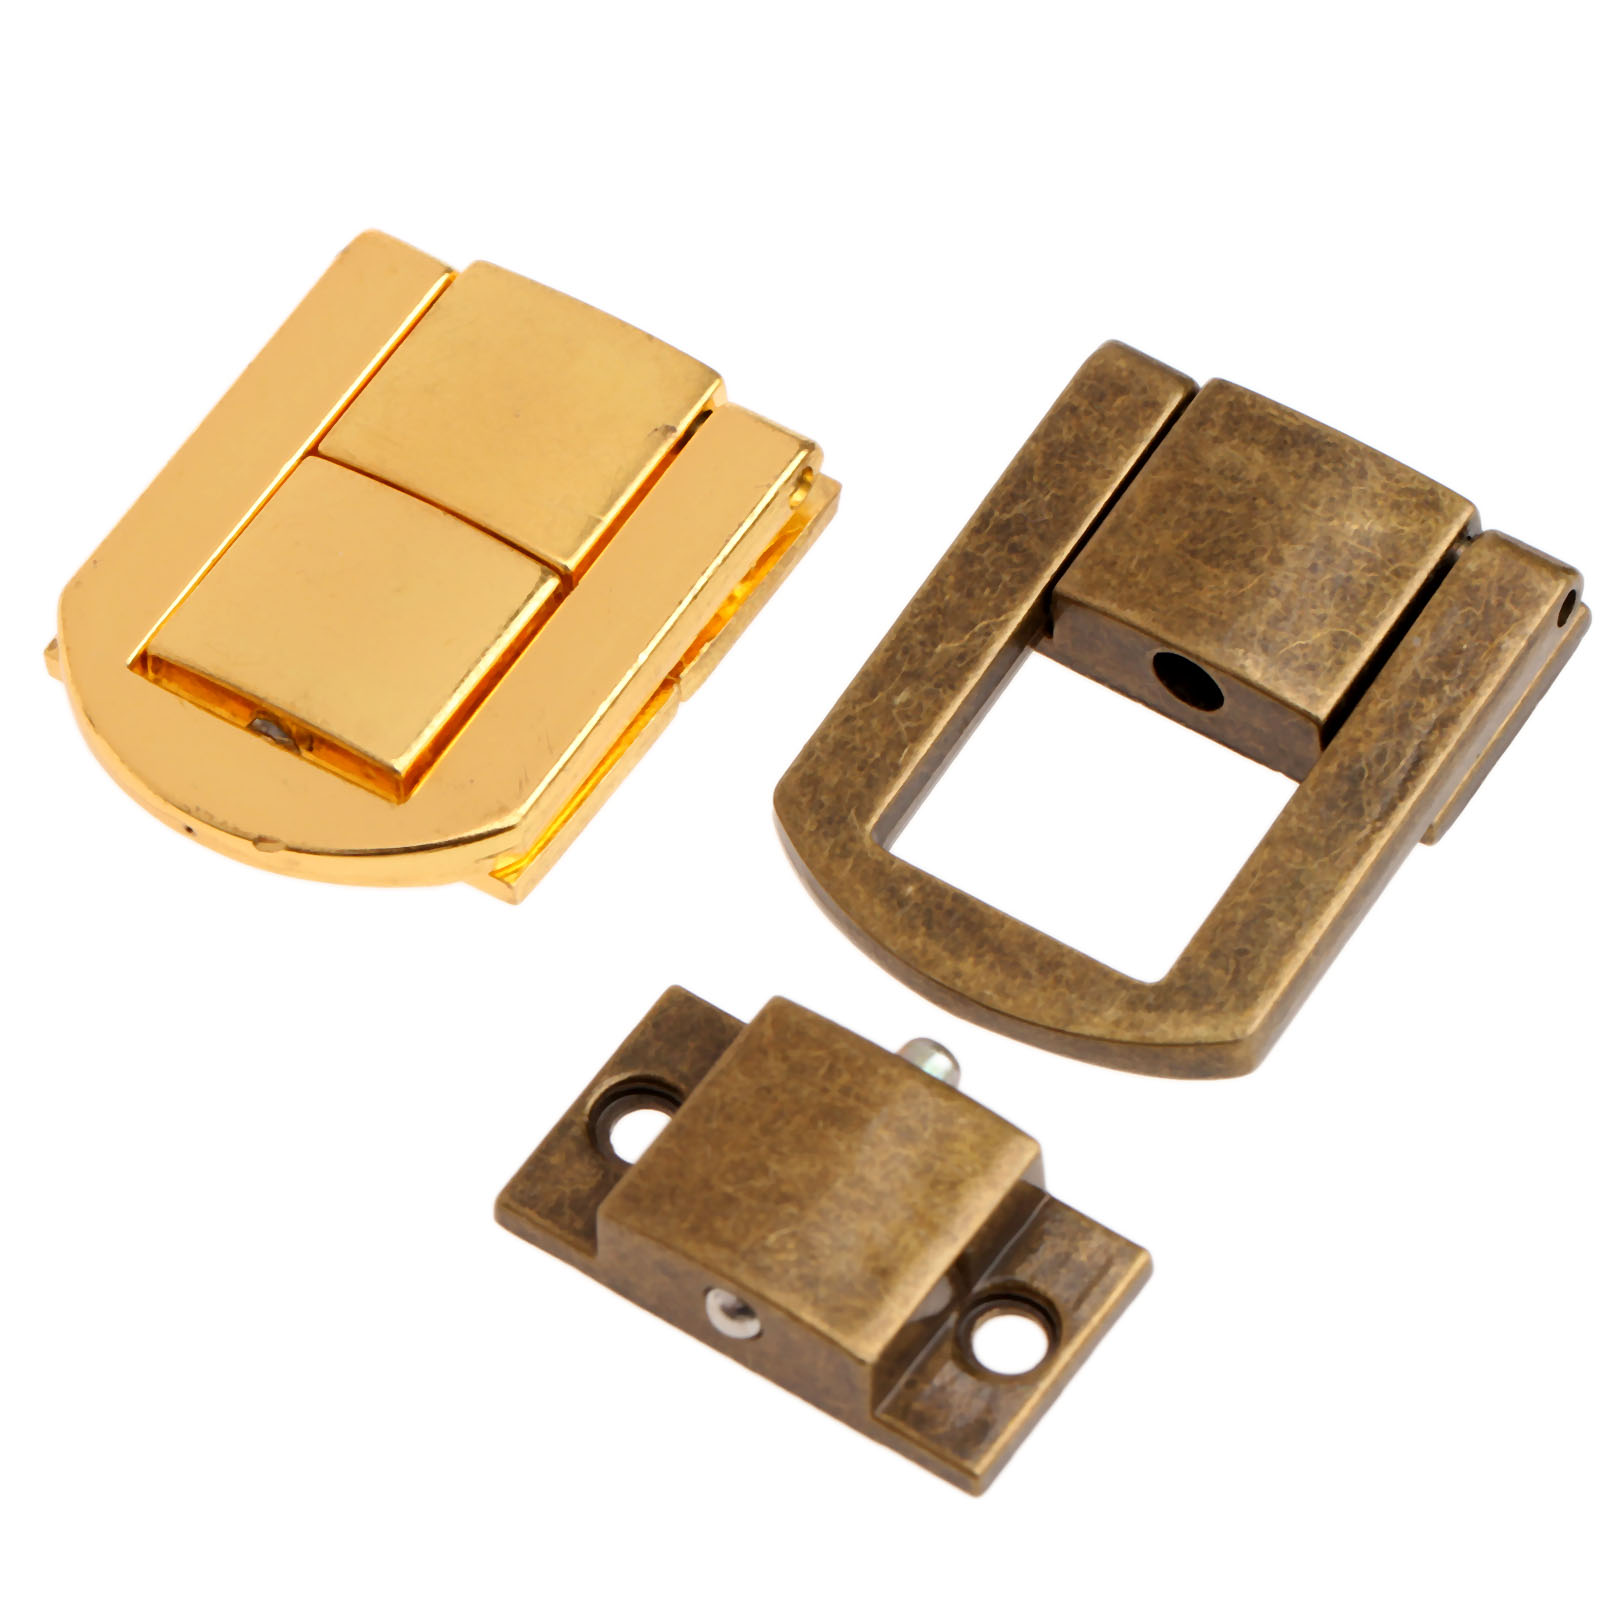 30mm 5pcs Antique Box Hasps Metal Lock Catch Latches For Jewelry Chest Box Suitcase Buckle Clasp Vintage Hardware Bronze/Gold